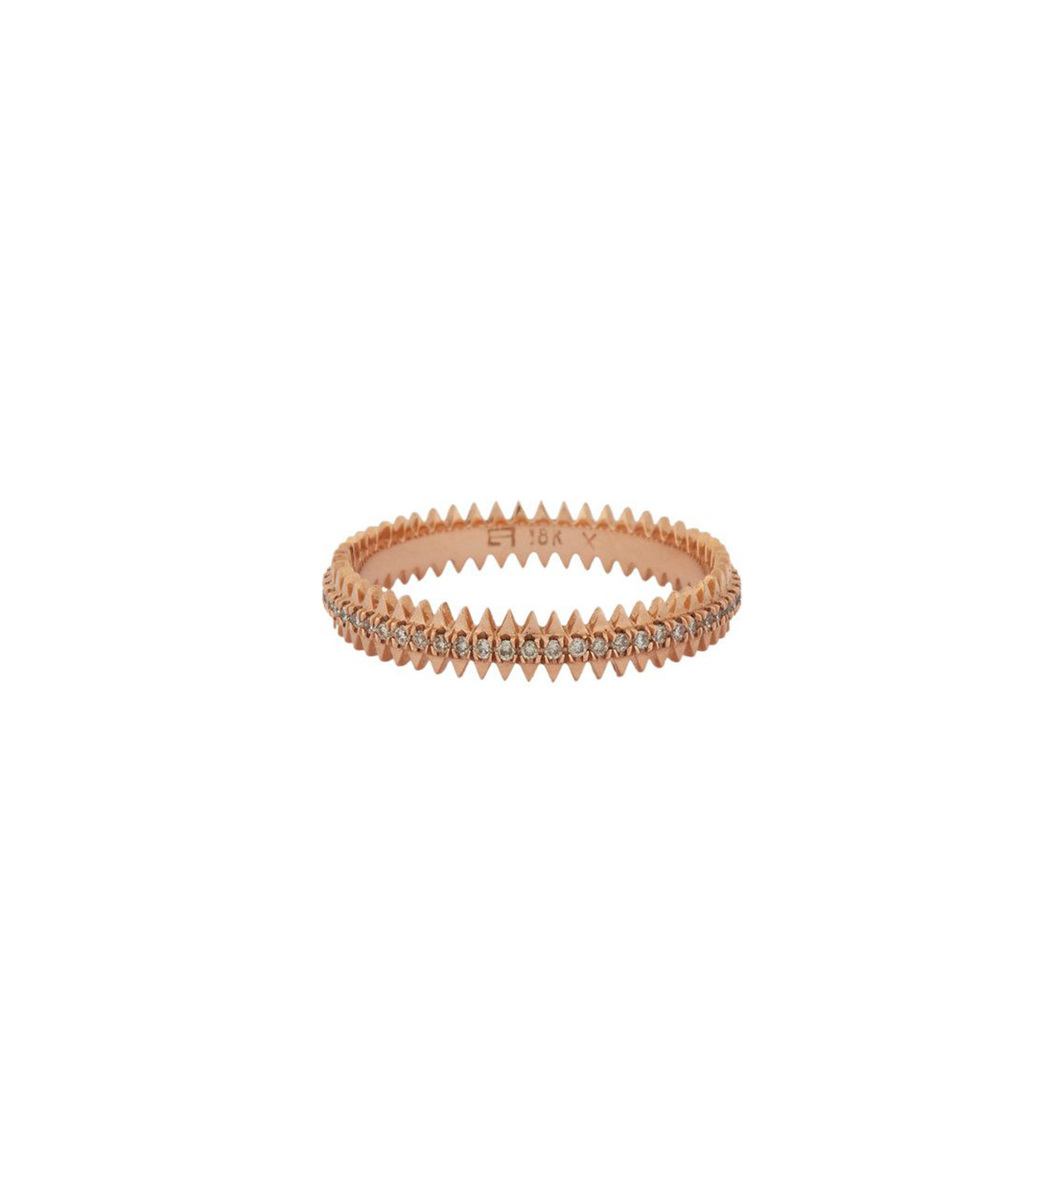 EVA FEHREN Zipper Band Ring 18Kt Rose Gold